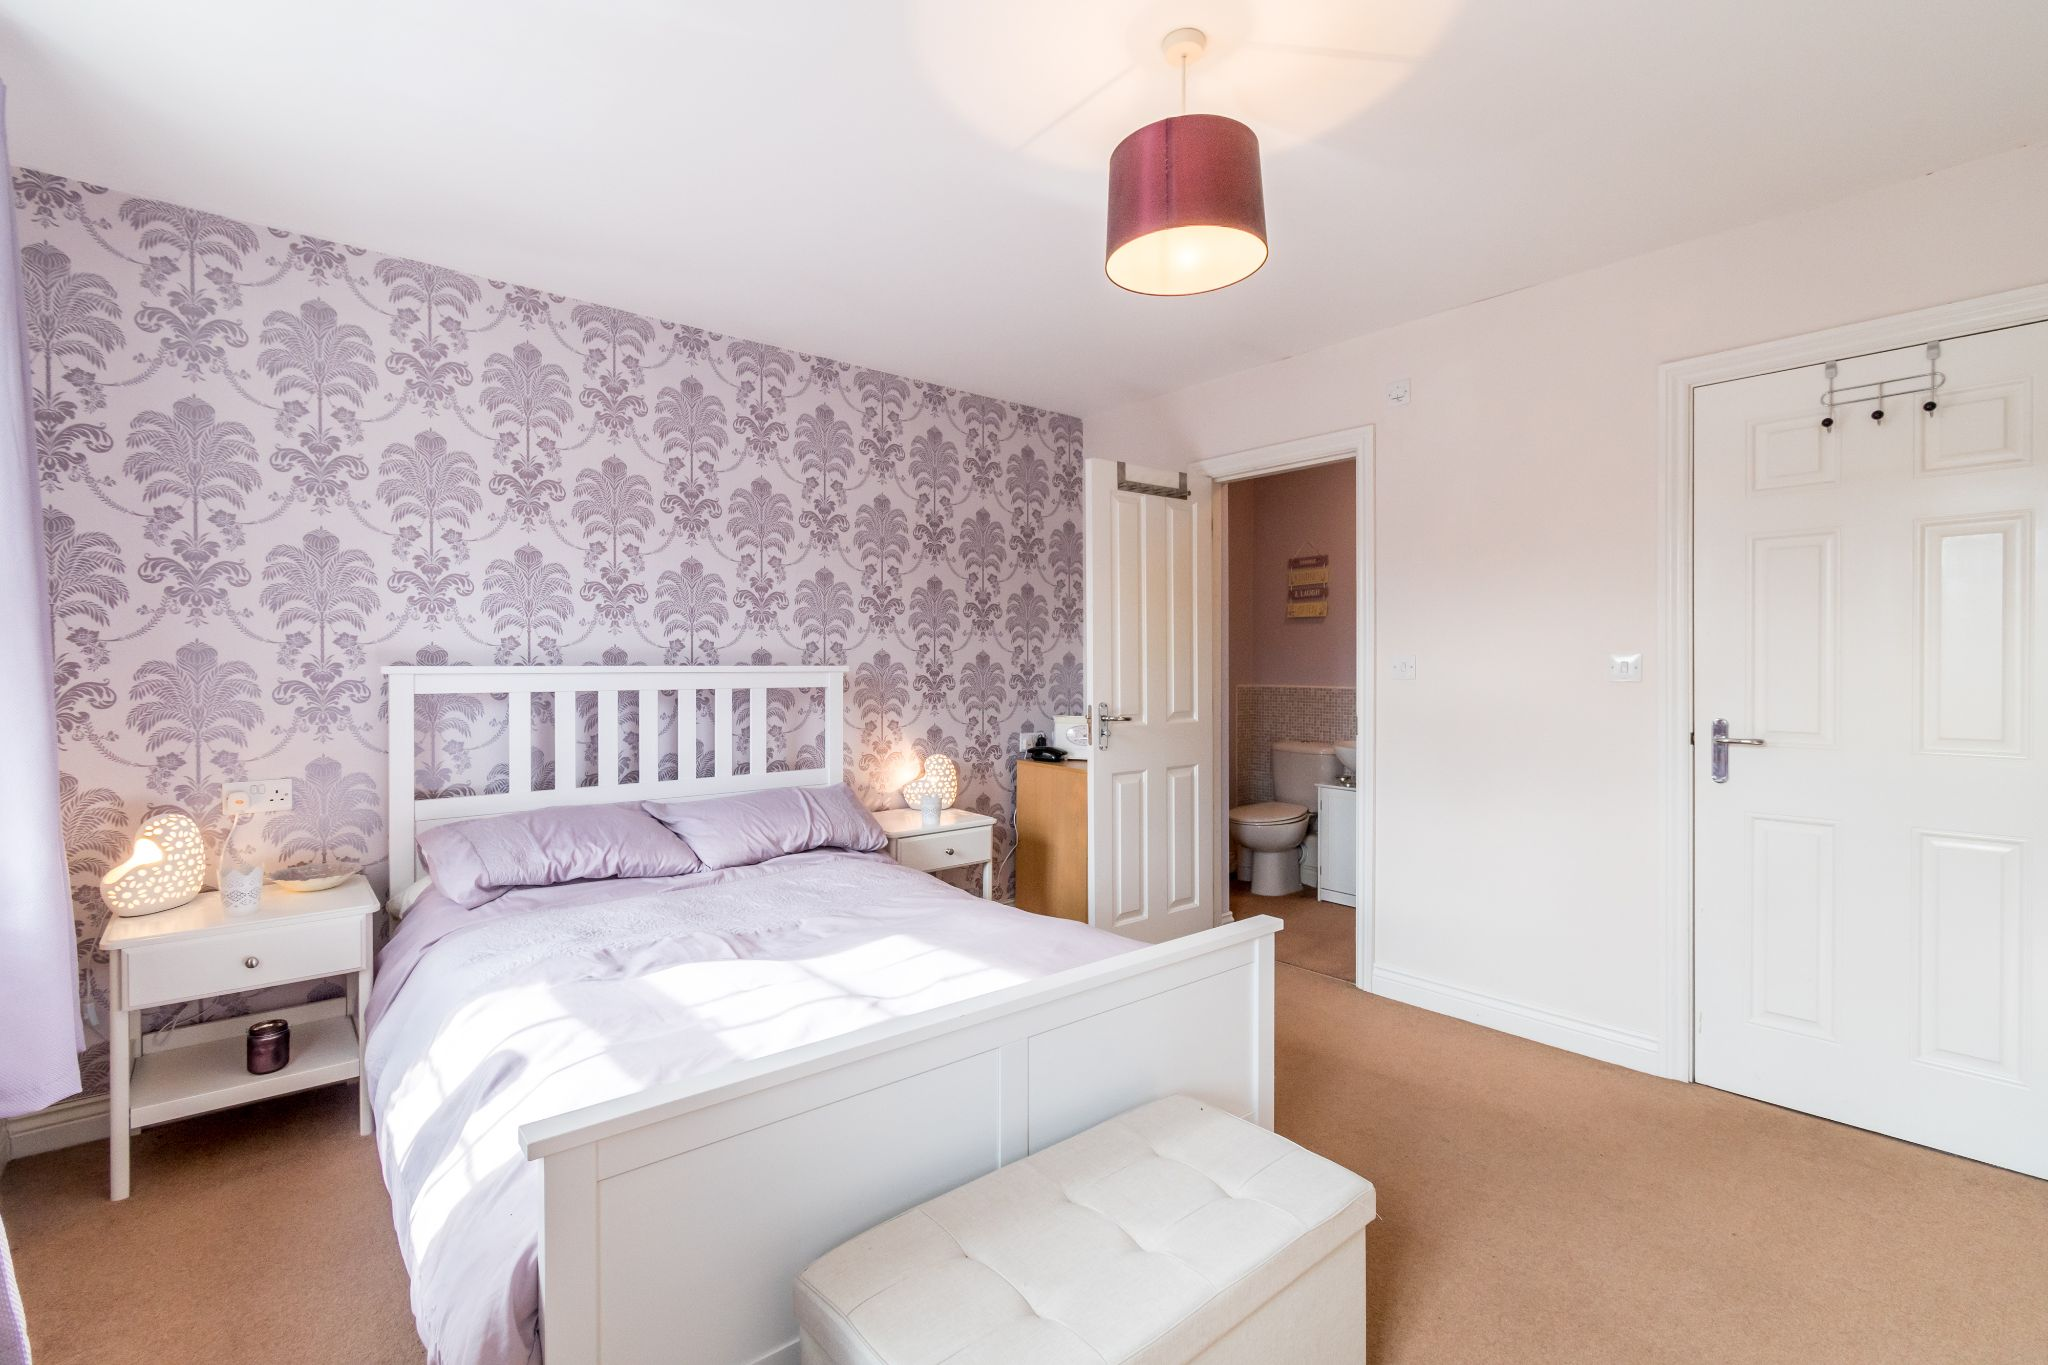 4 bedroom mid terraced house SSTC in Brighouse - Photograph 15